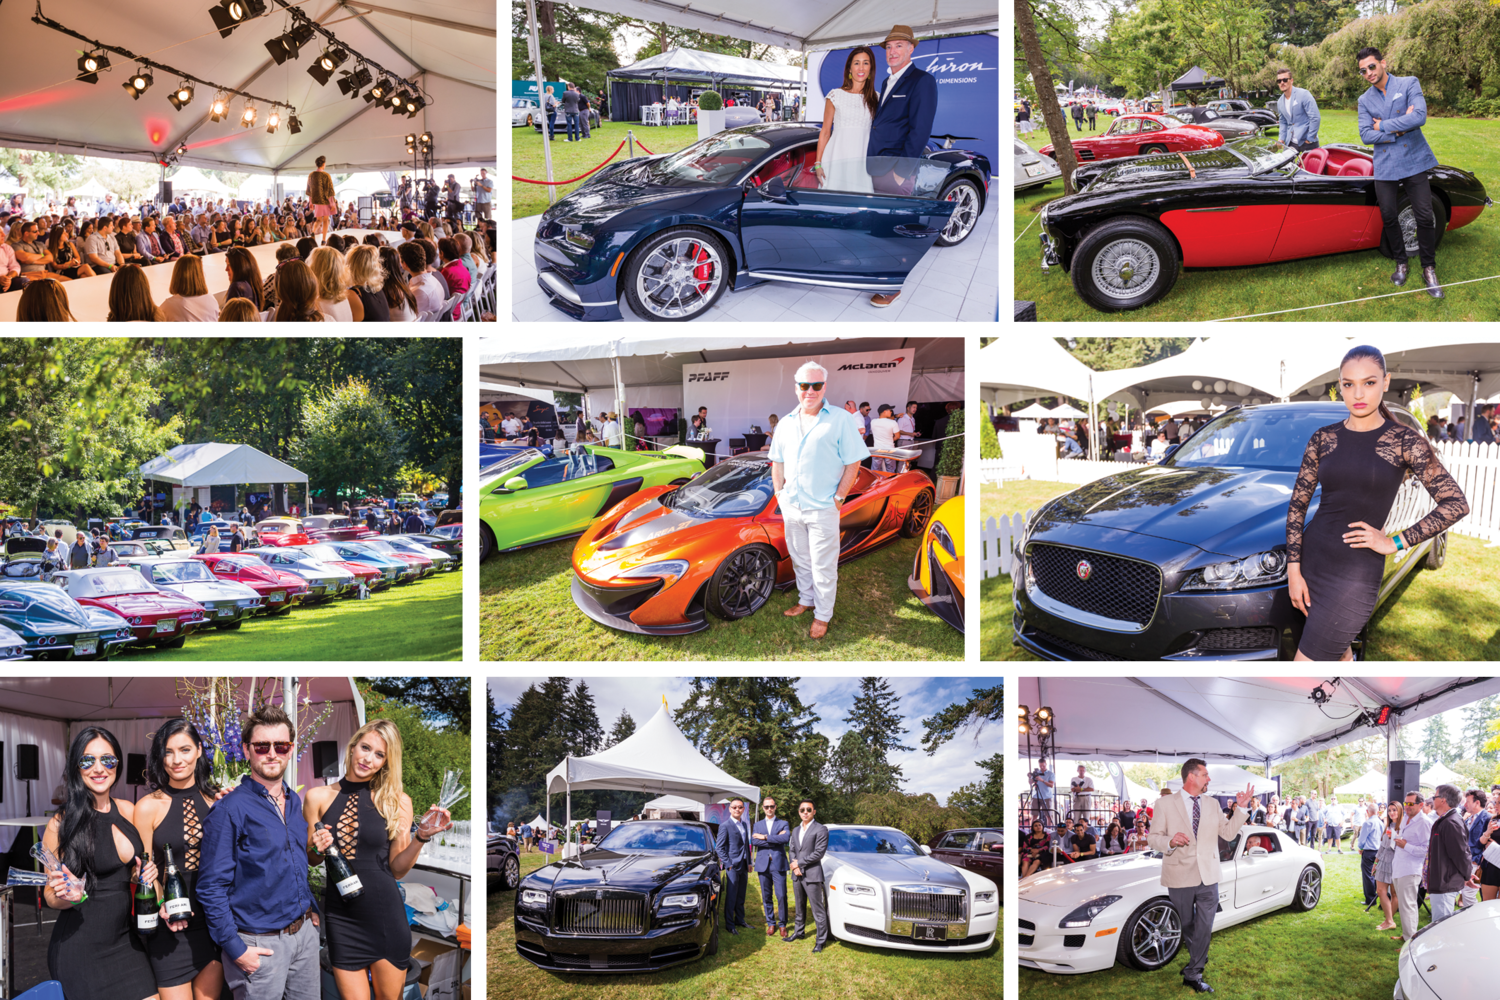 EVENT INFORMATION LUXURY SUPERCAR WEEKEND - Luxury car show